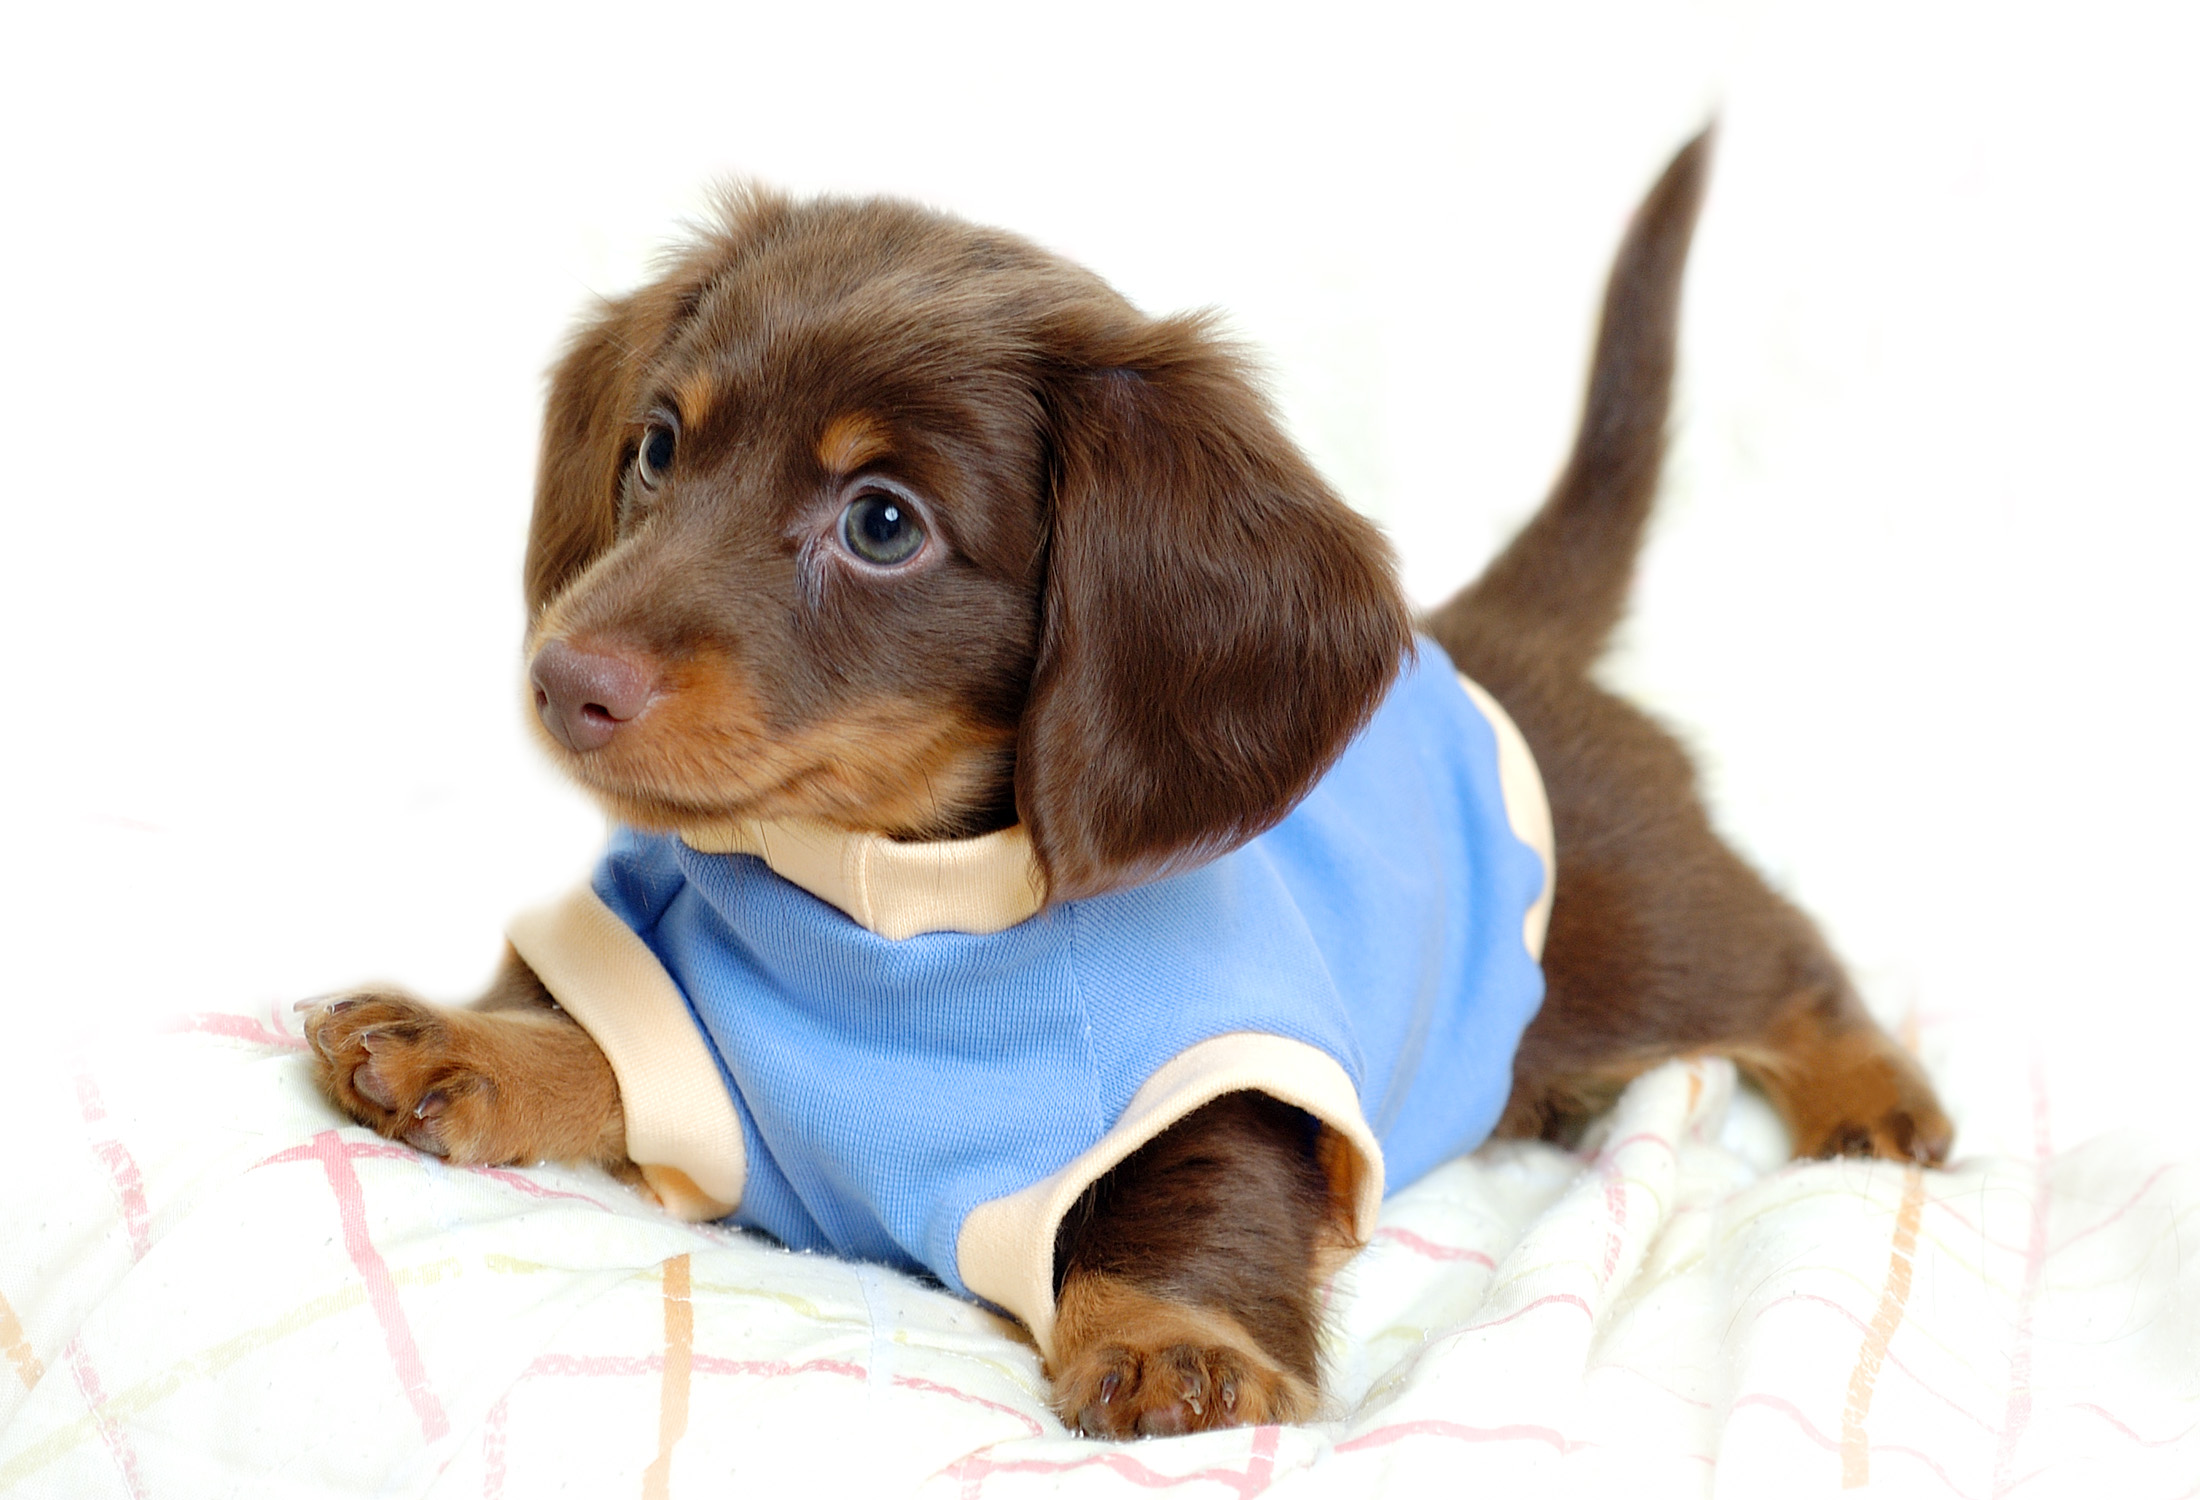 930 Puppy HD Wallpapers   Background Images   Wallpaper Abyss HD Wallpaper   Background Image ID 59930